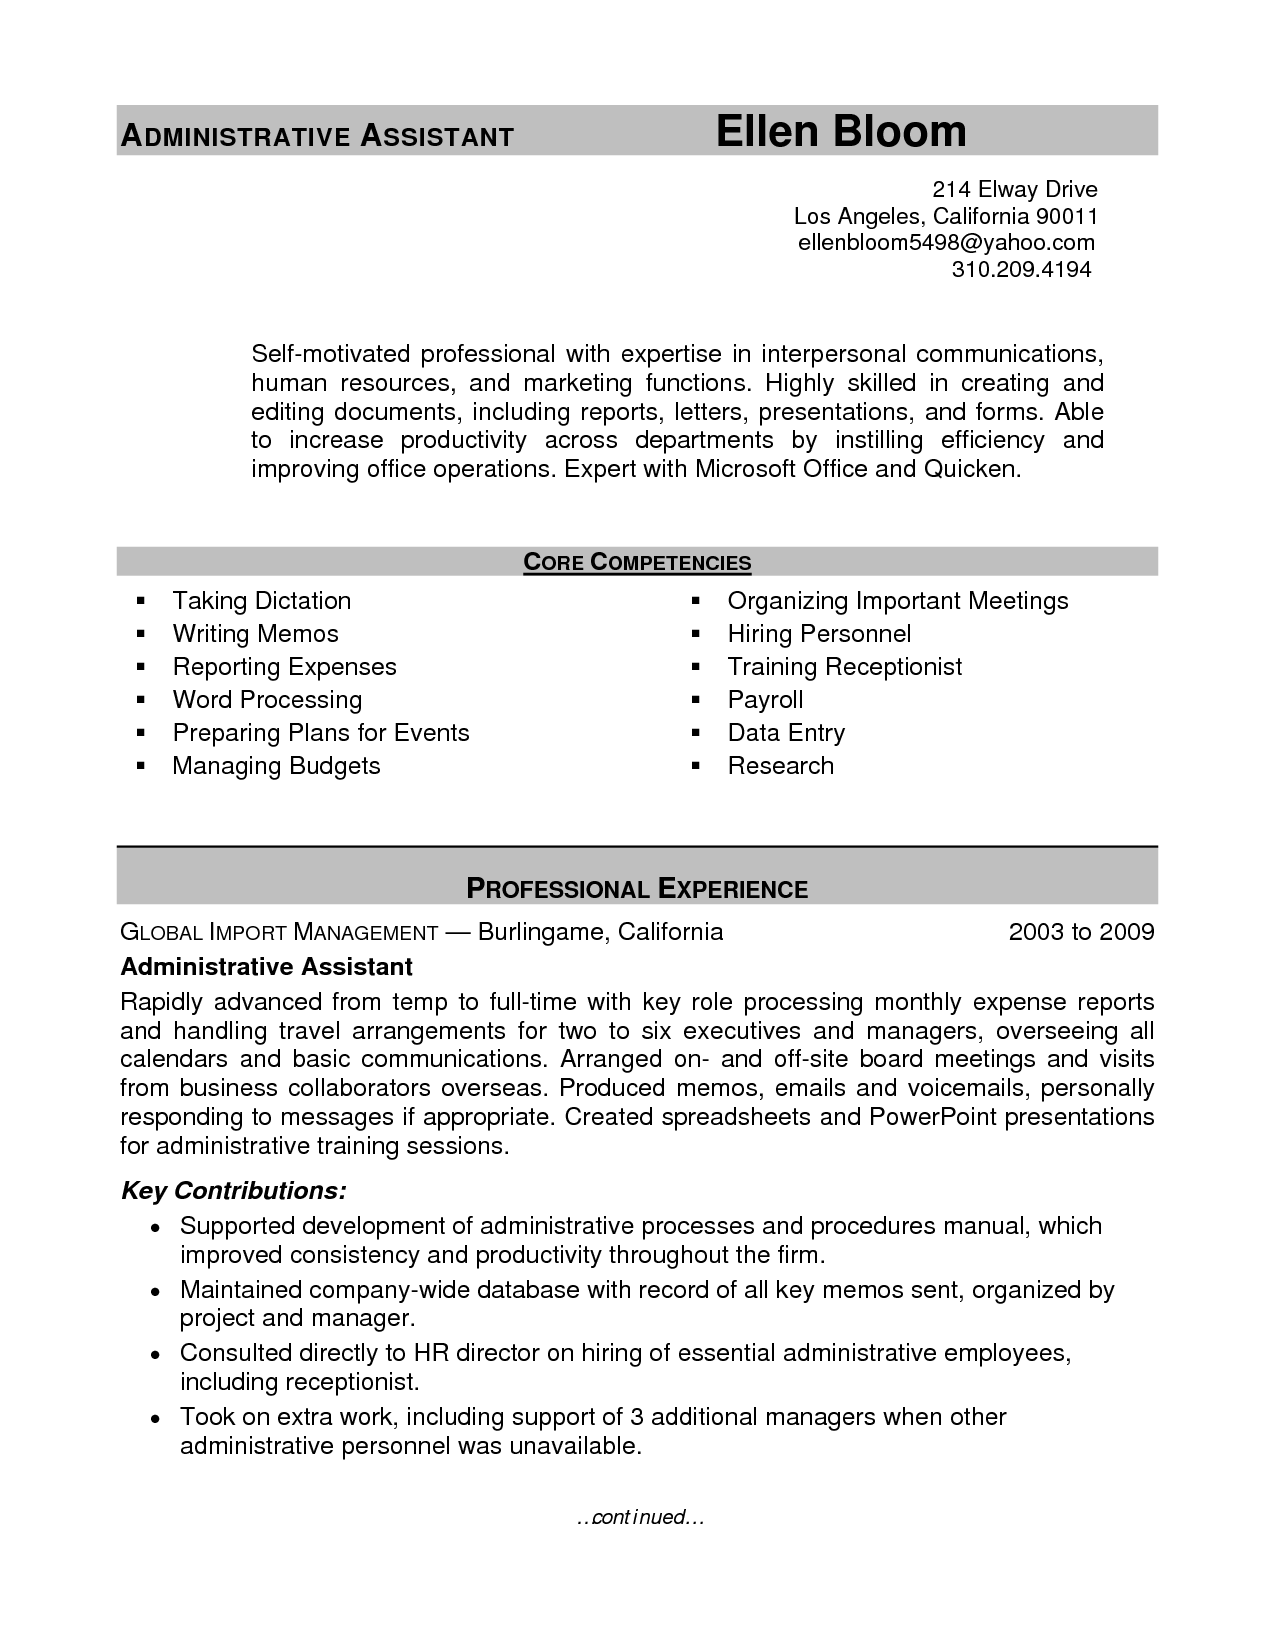 administrative assistant resume writers imagerackus scenic best resume examples for your job search administrative assistant functional disposition photo gallery